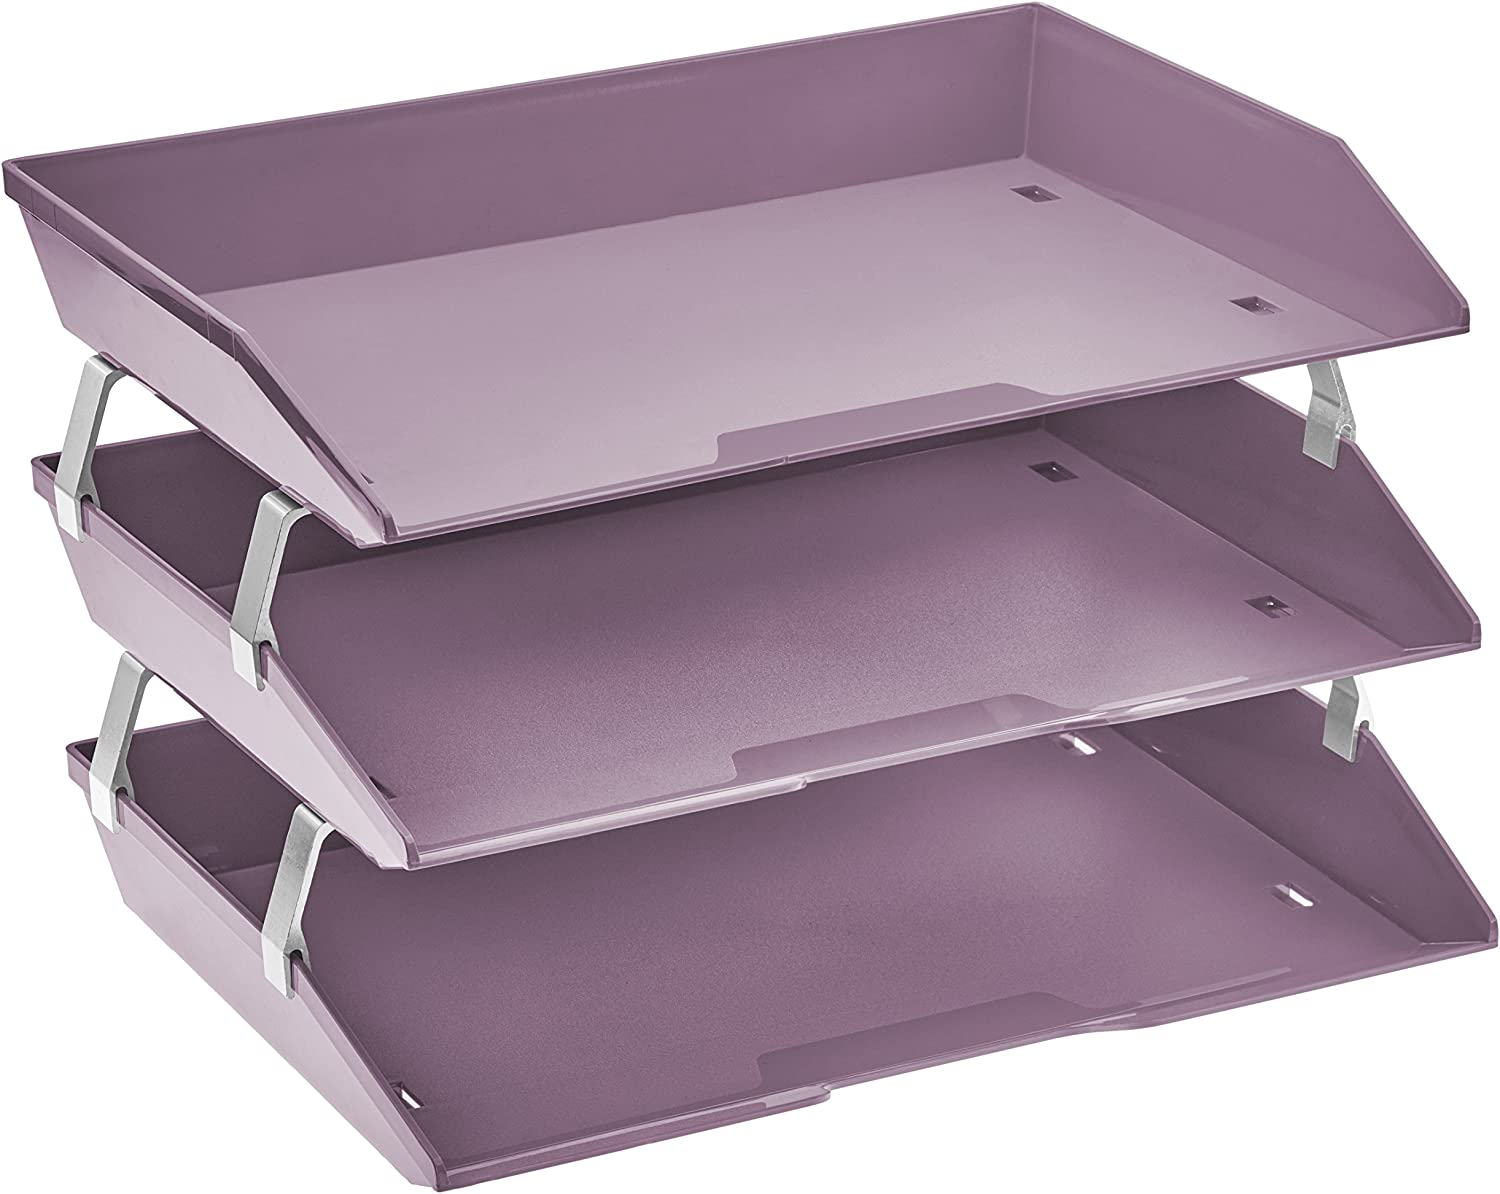 Acrimet Facility 3 Tier Letter Tray Side Load Plastic Desktop File Organizer (Solid Purple Color)